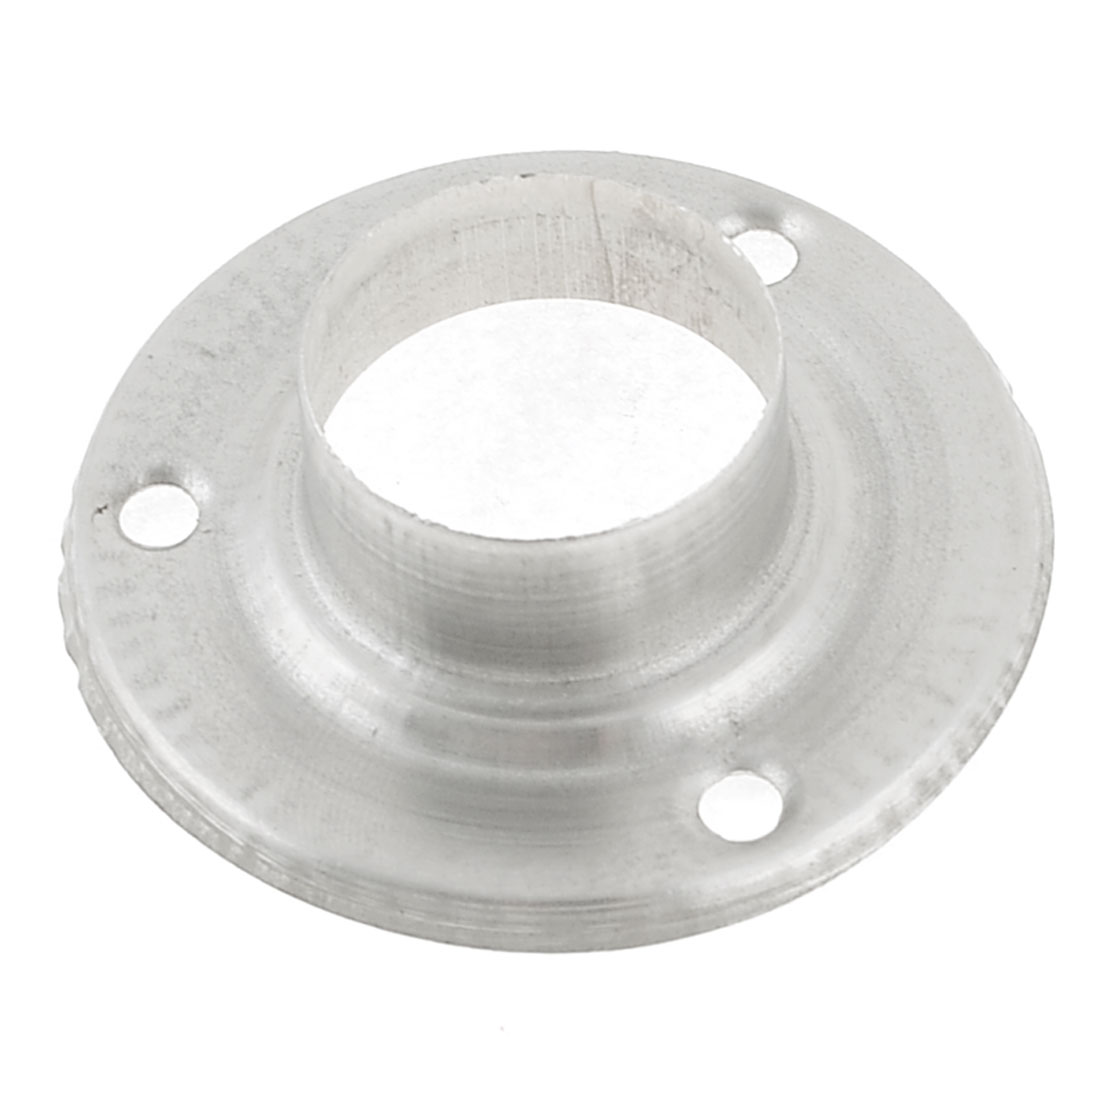 27mm x 17mm Stainless Steel Weld Neck Flange for Machines Piping